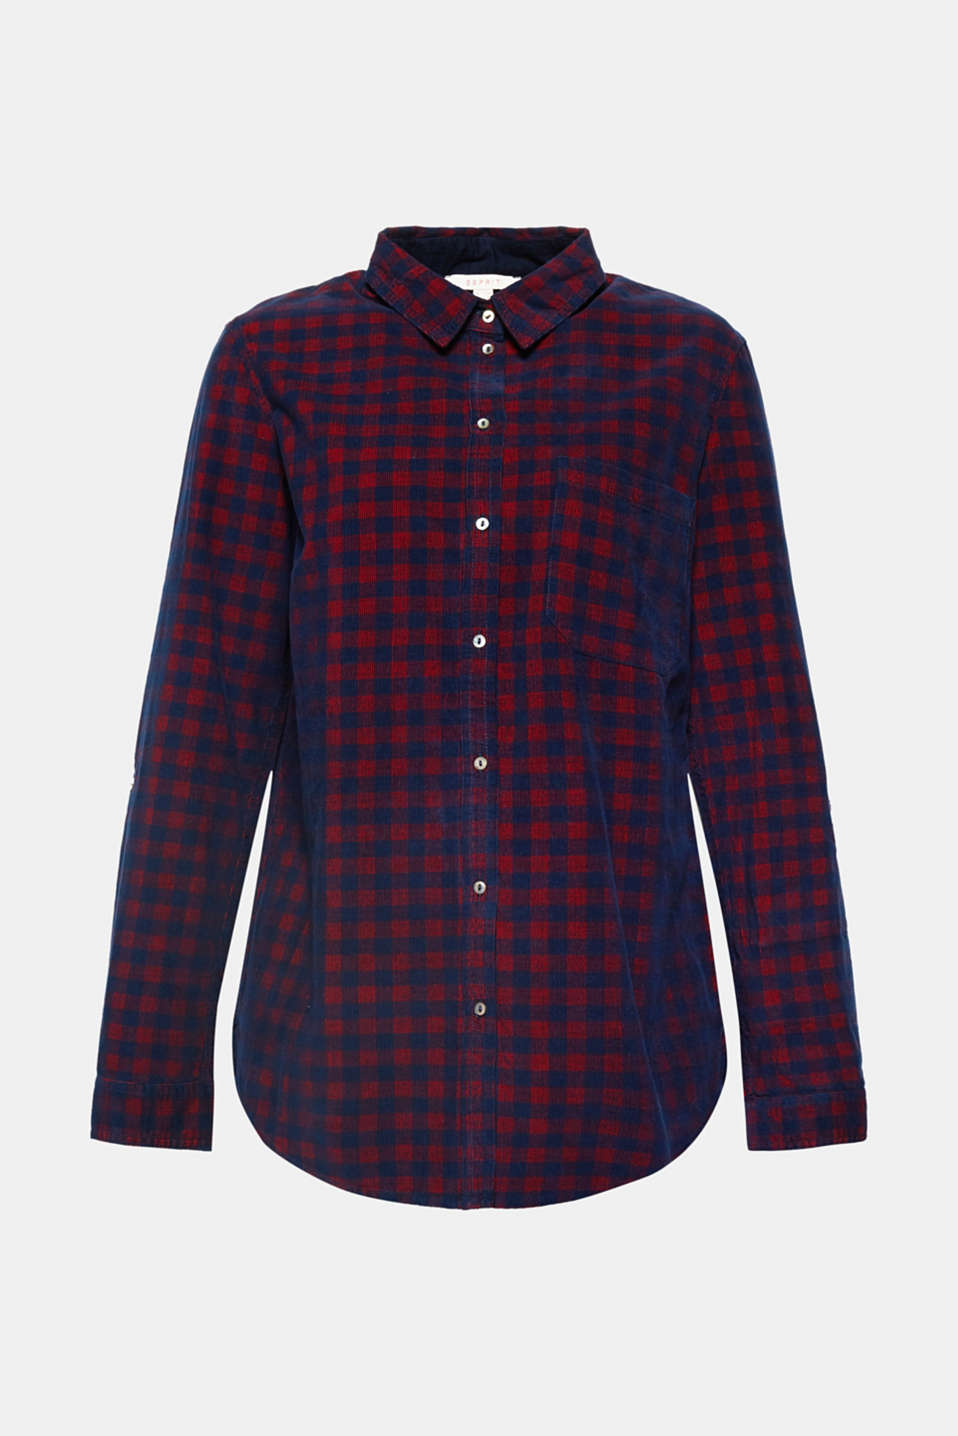 Esprit - Check corduroy shirt, 100% cotton